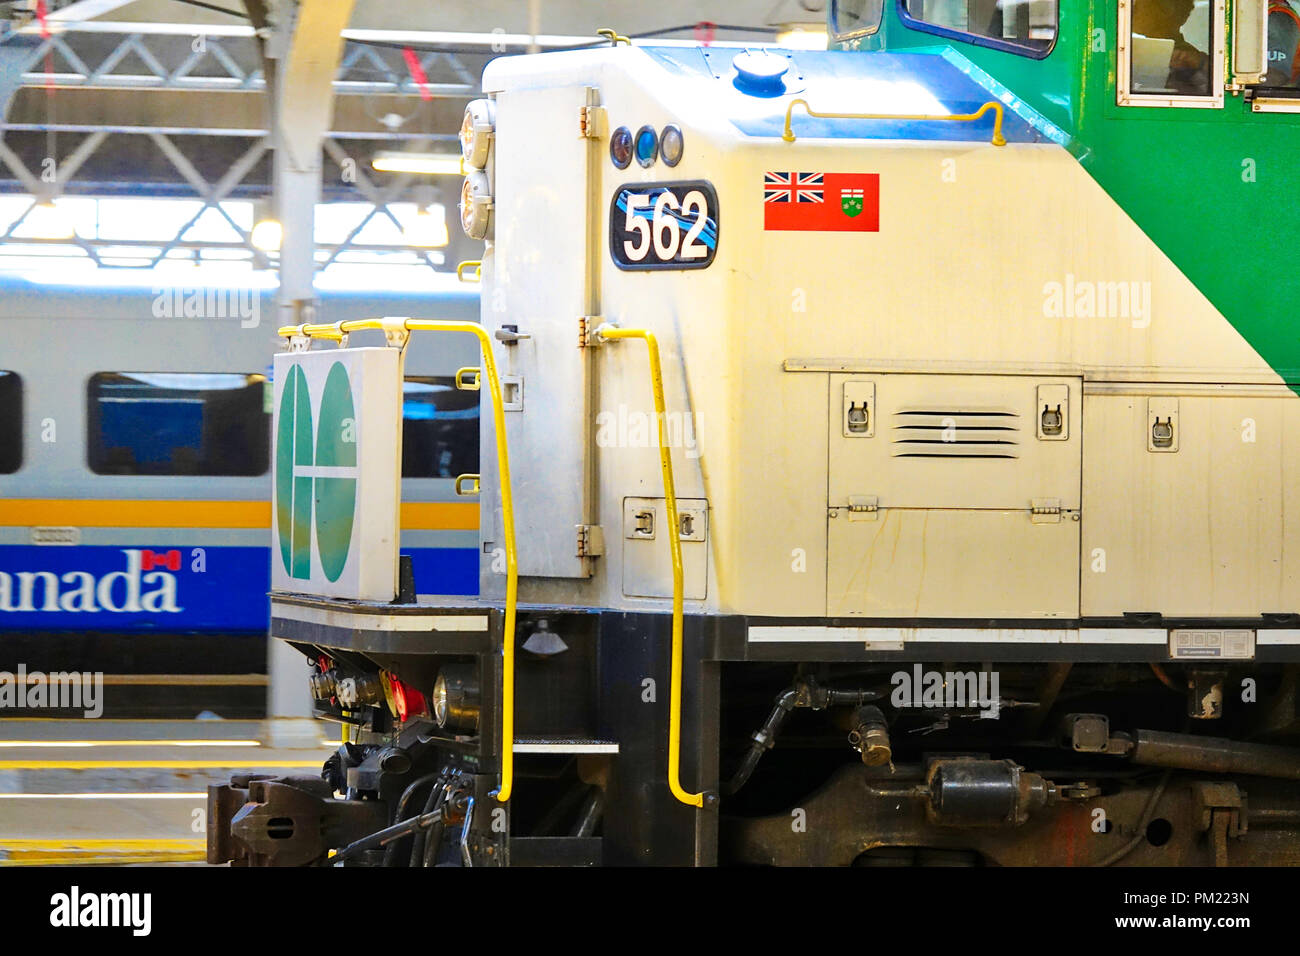 Toronto, Ontario, Canada-26 June, 2018: Toronto Go Train arriving at Union station - Stock Image